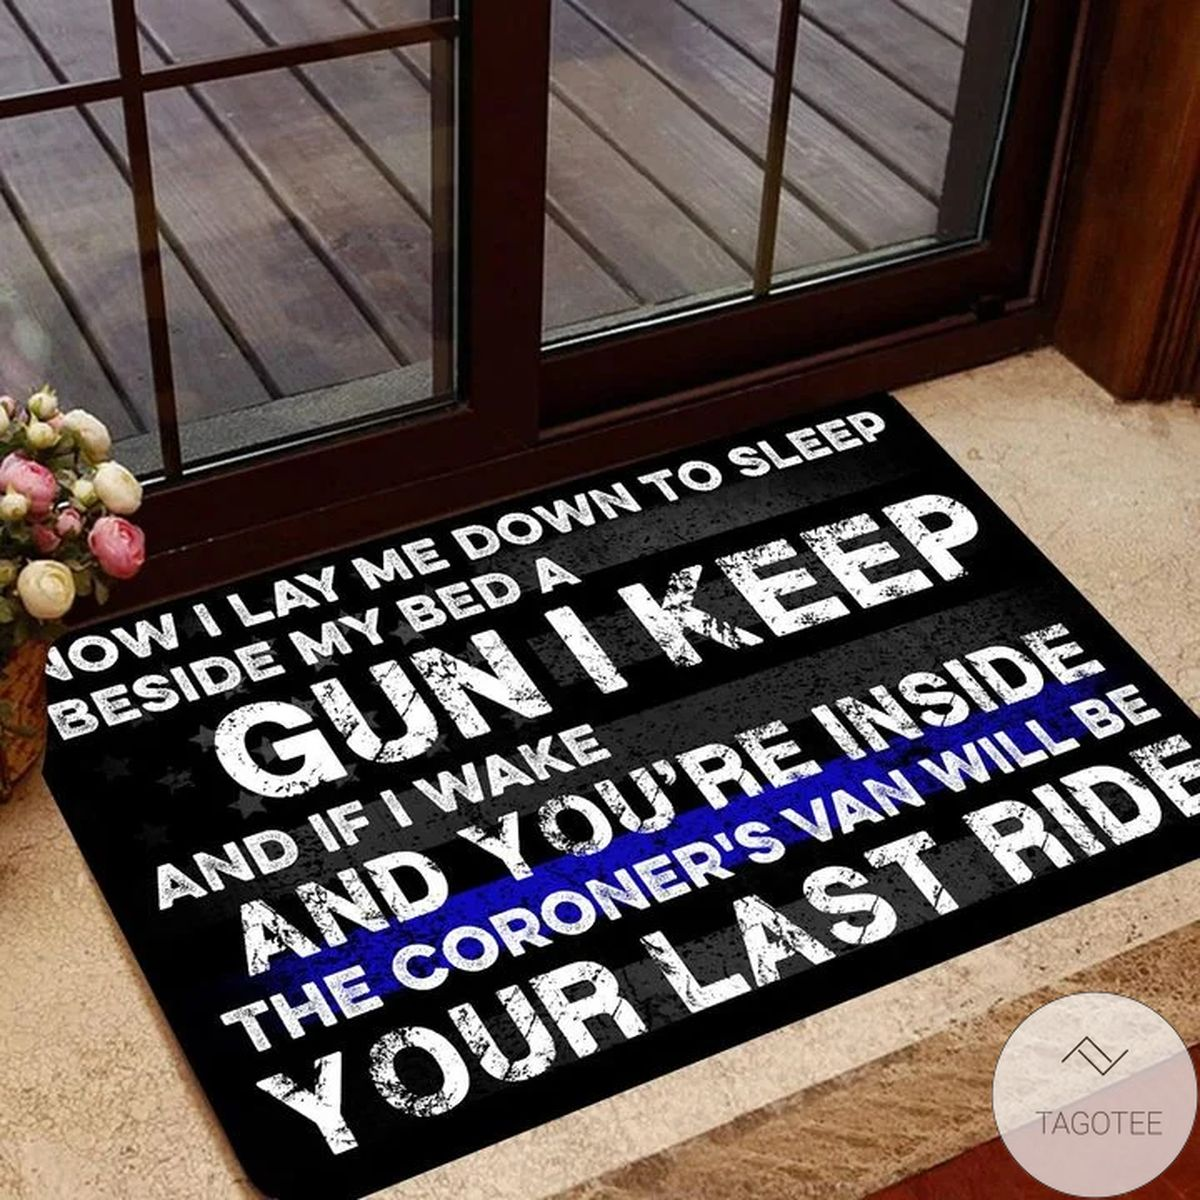 Funny Tee Now I Lay Me Down To Sleep Beside My Bed A Gun I Keep And If I Wake And You're Inside The Coroner's Van Will Be Your Last Ride Shirt